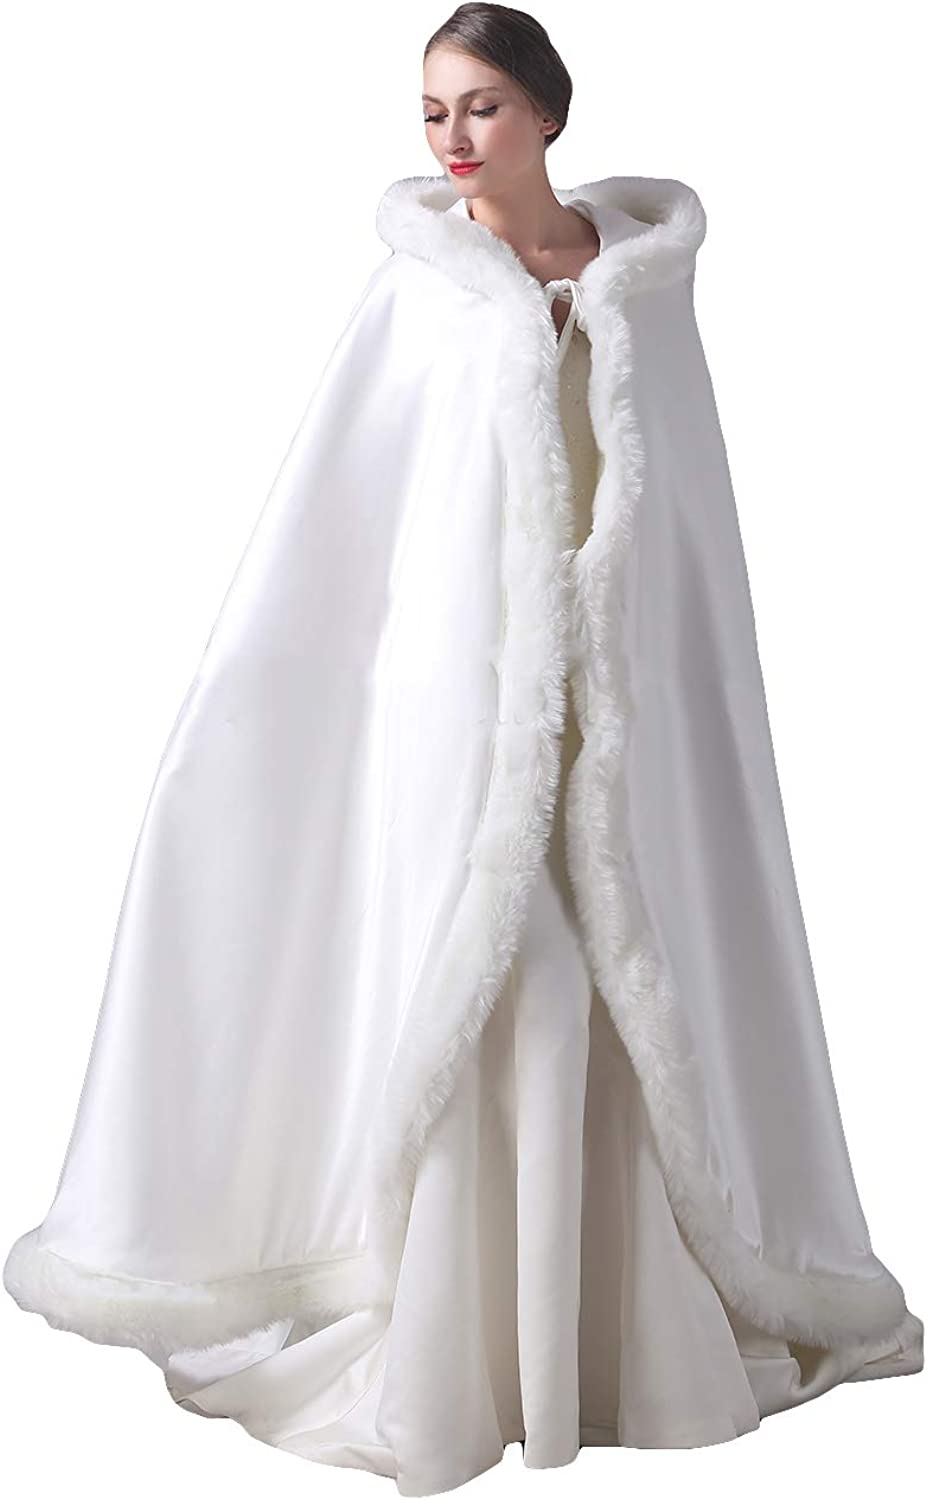 Fenghuavip White Wedding Cloak Robes Satin Faux Far Winter Gifts Shawl Capes Long